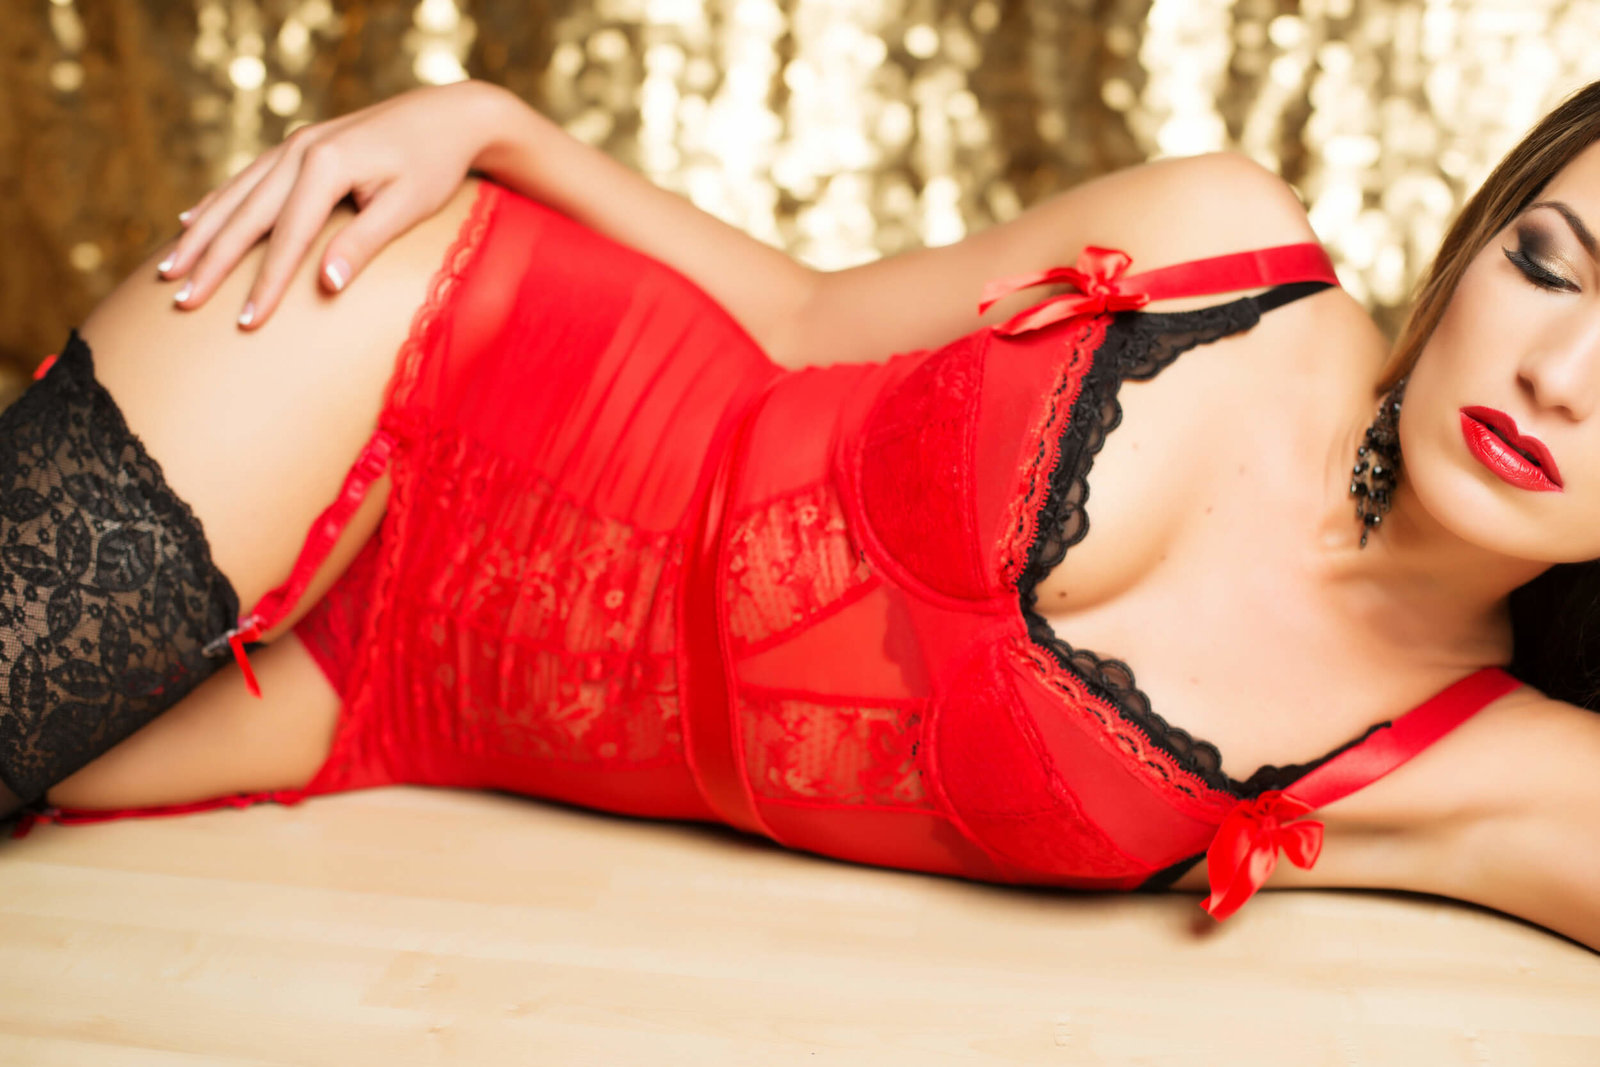 red lacey lingerie, red lips boudoir photos